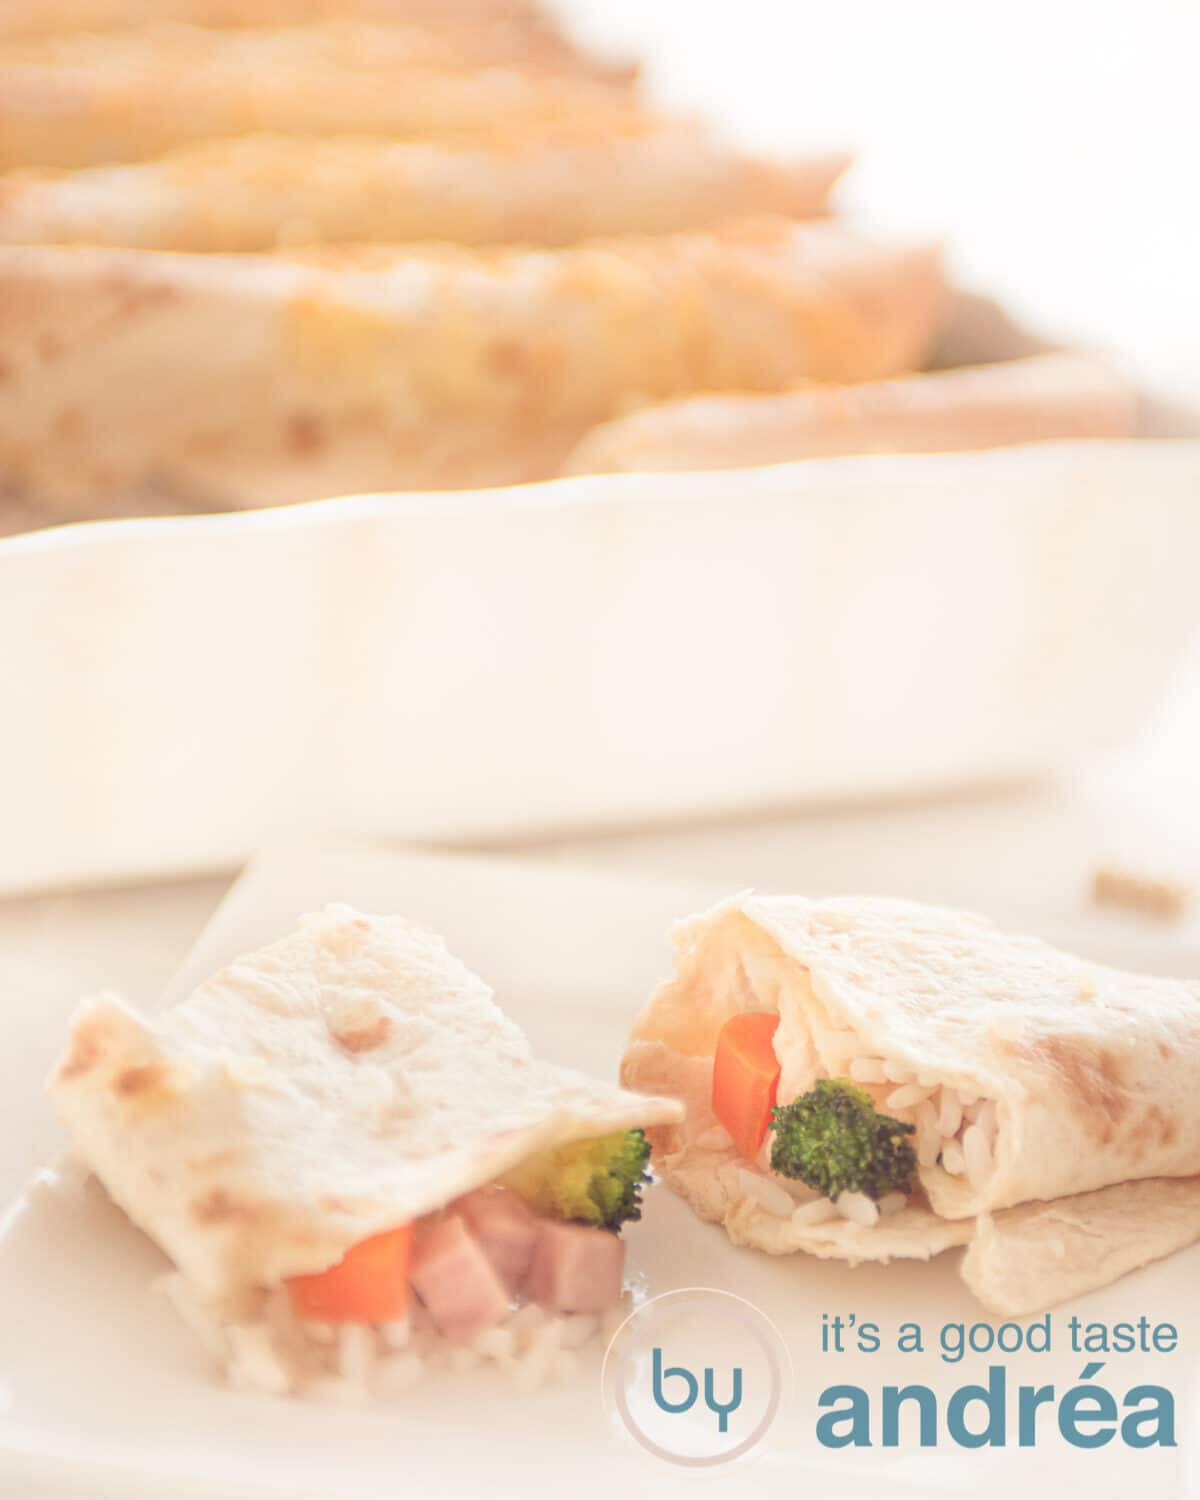 Two half wraps filled with rice, carrots, broccoli and ham and a casserole in the background